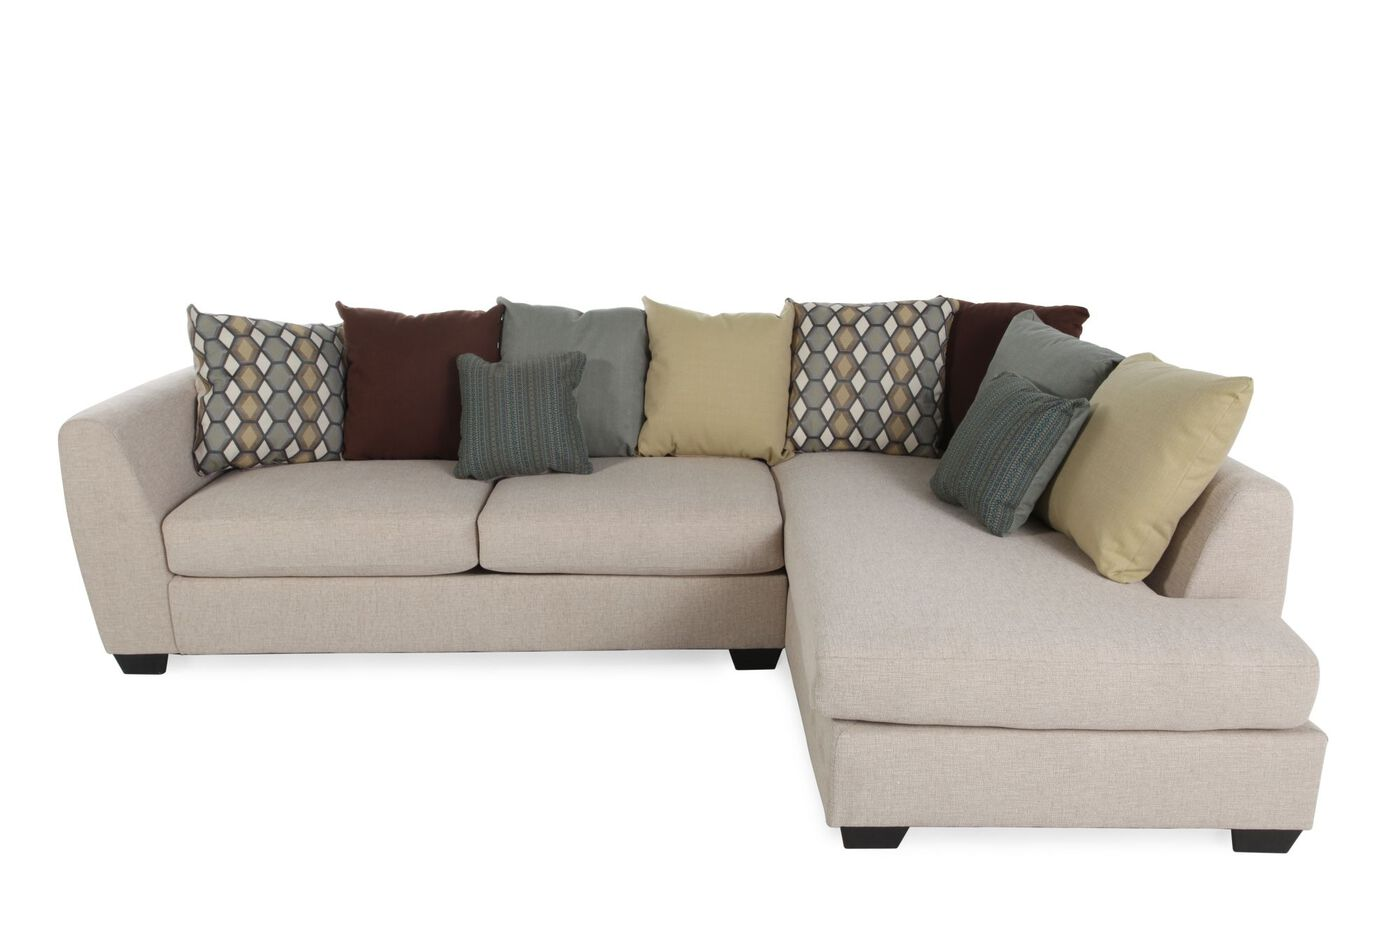 Two piece contemporary 80 sectional in sandstone mathis brothers furniture for Mathis brothers living room furniture